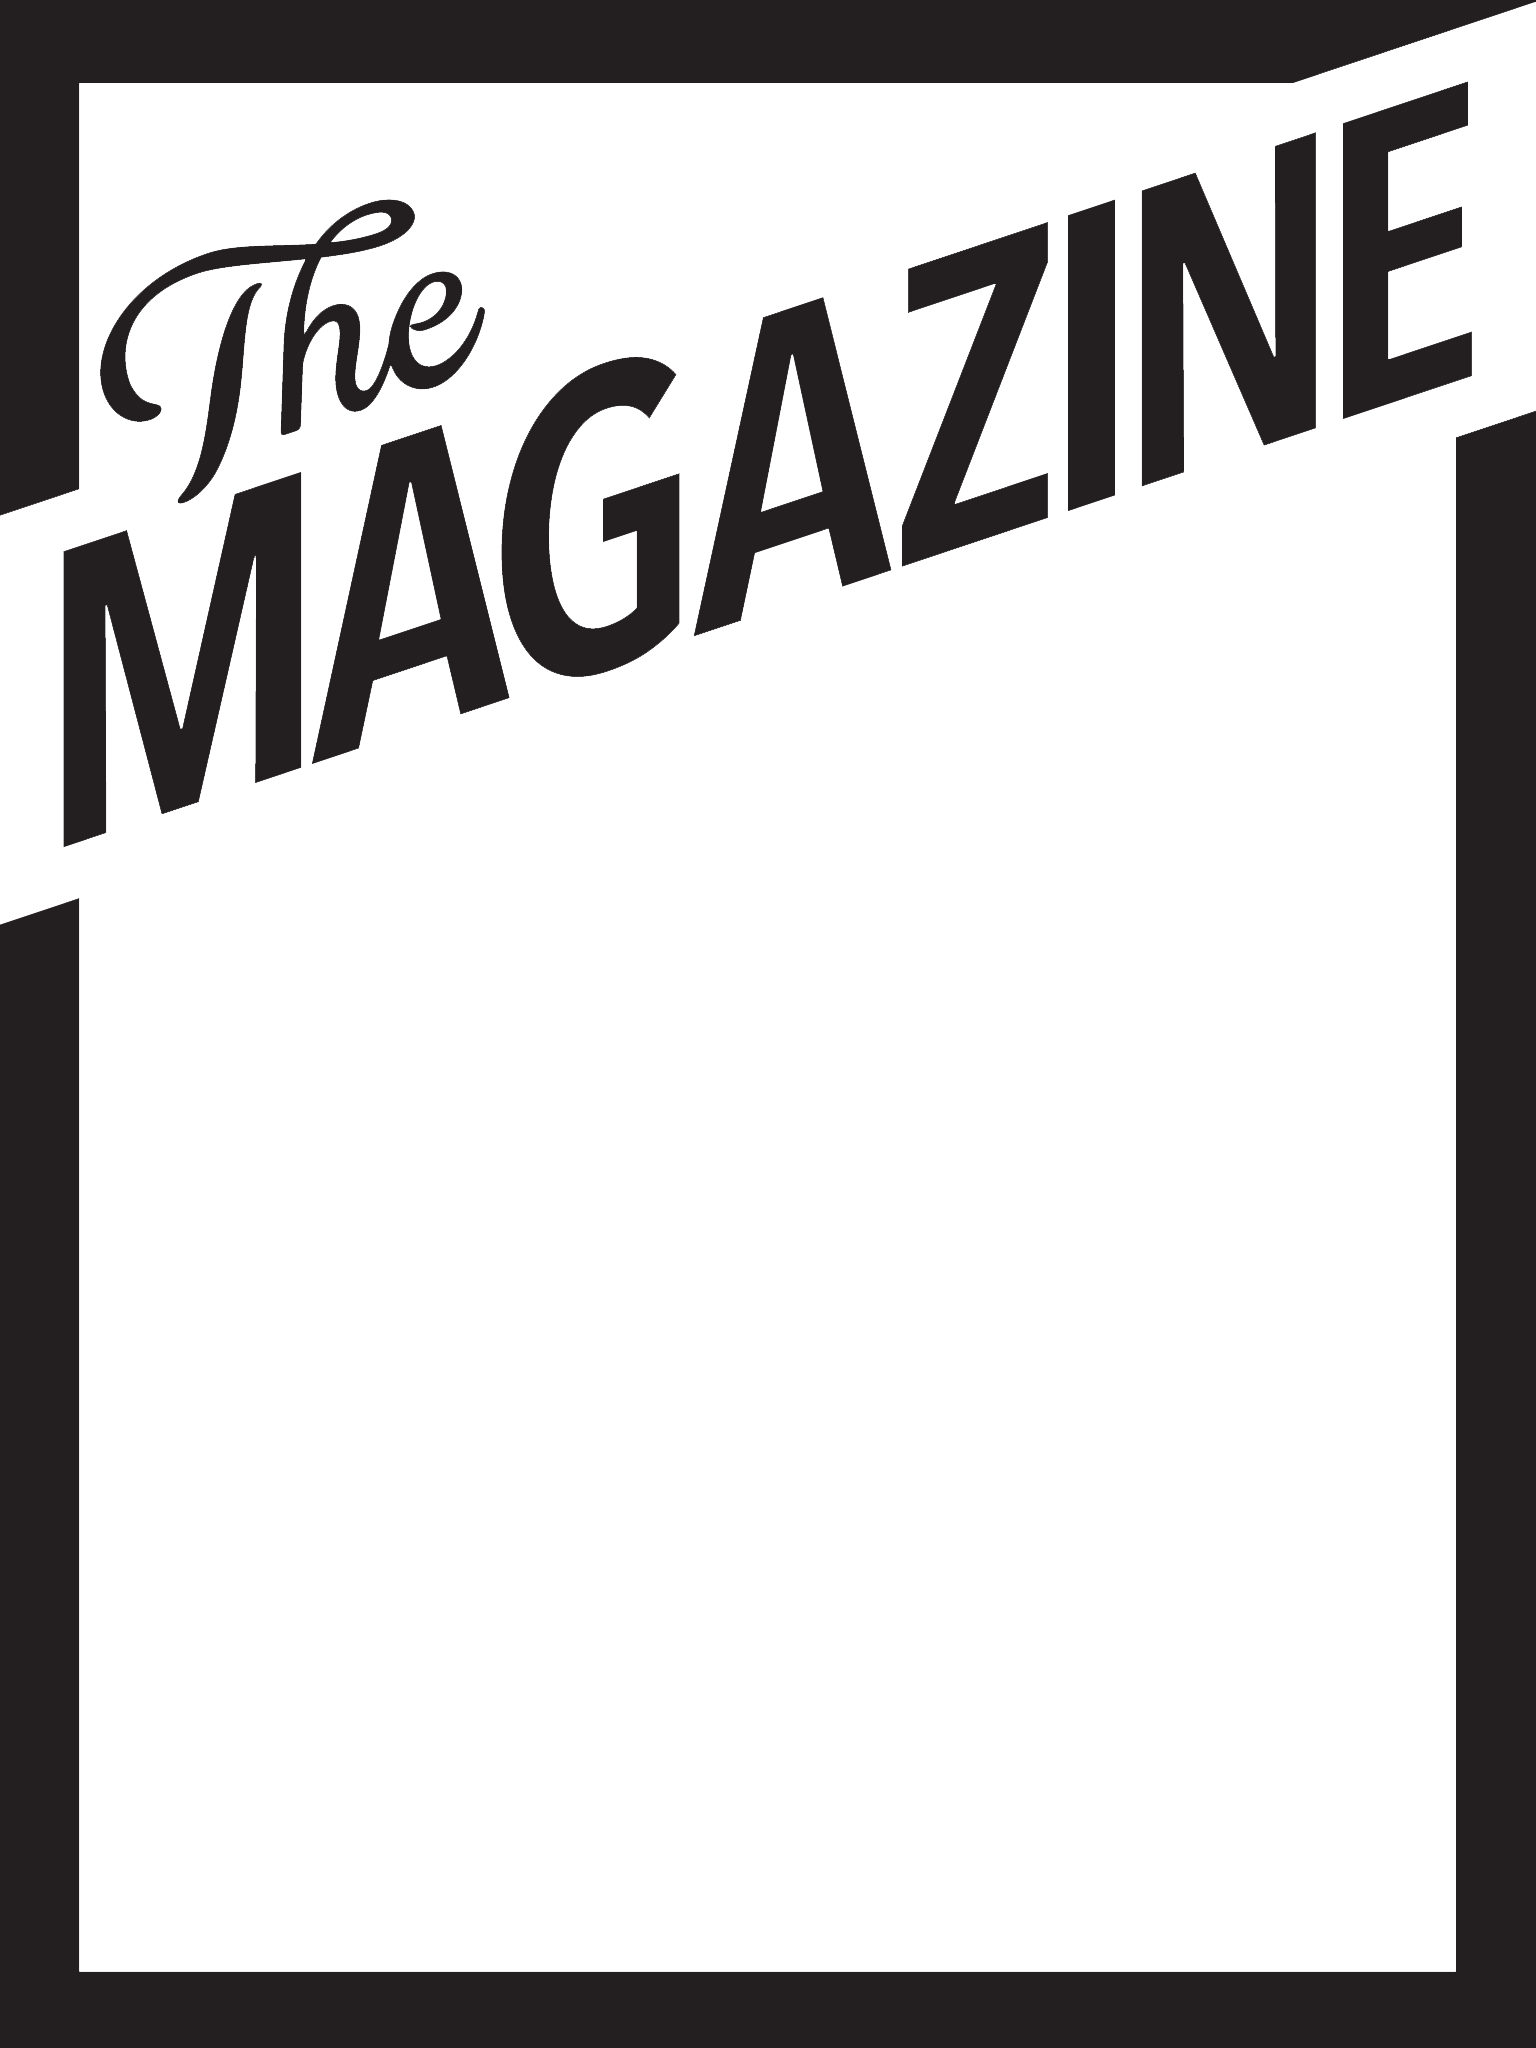 Blank Magazine Cover Templates